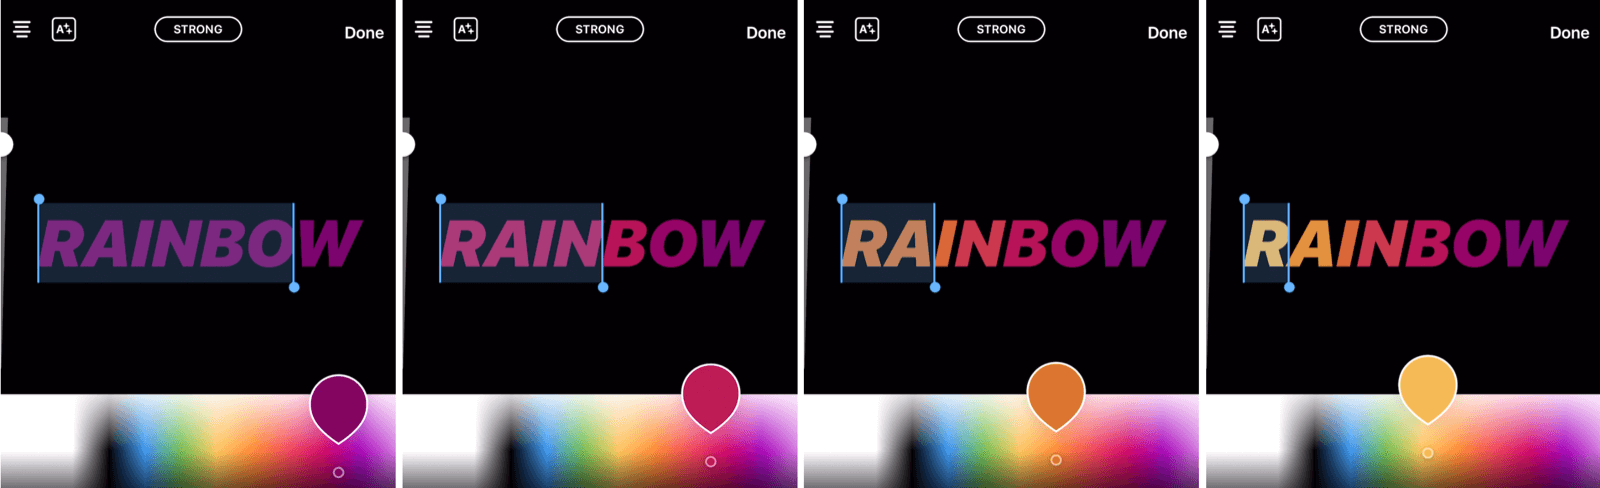 create rainbow text in Instagram Stories